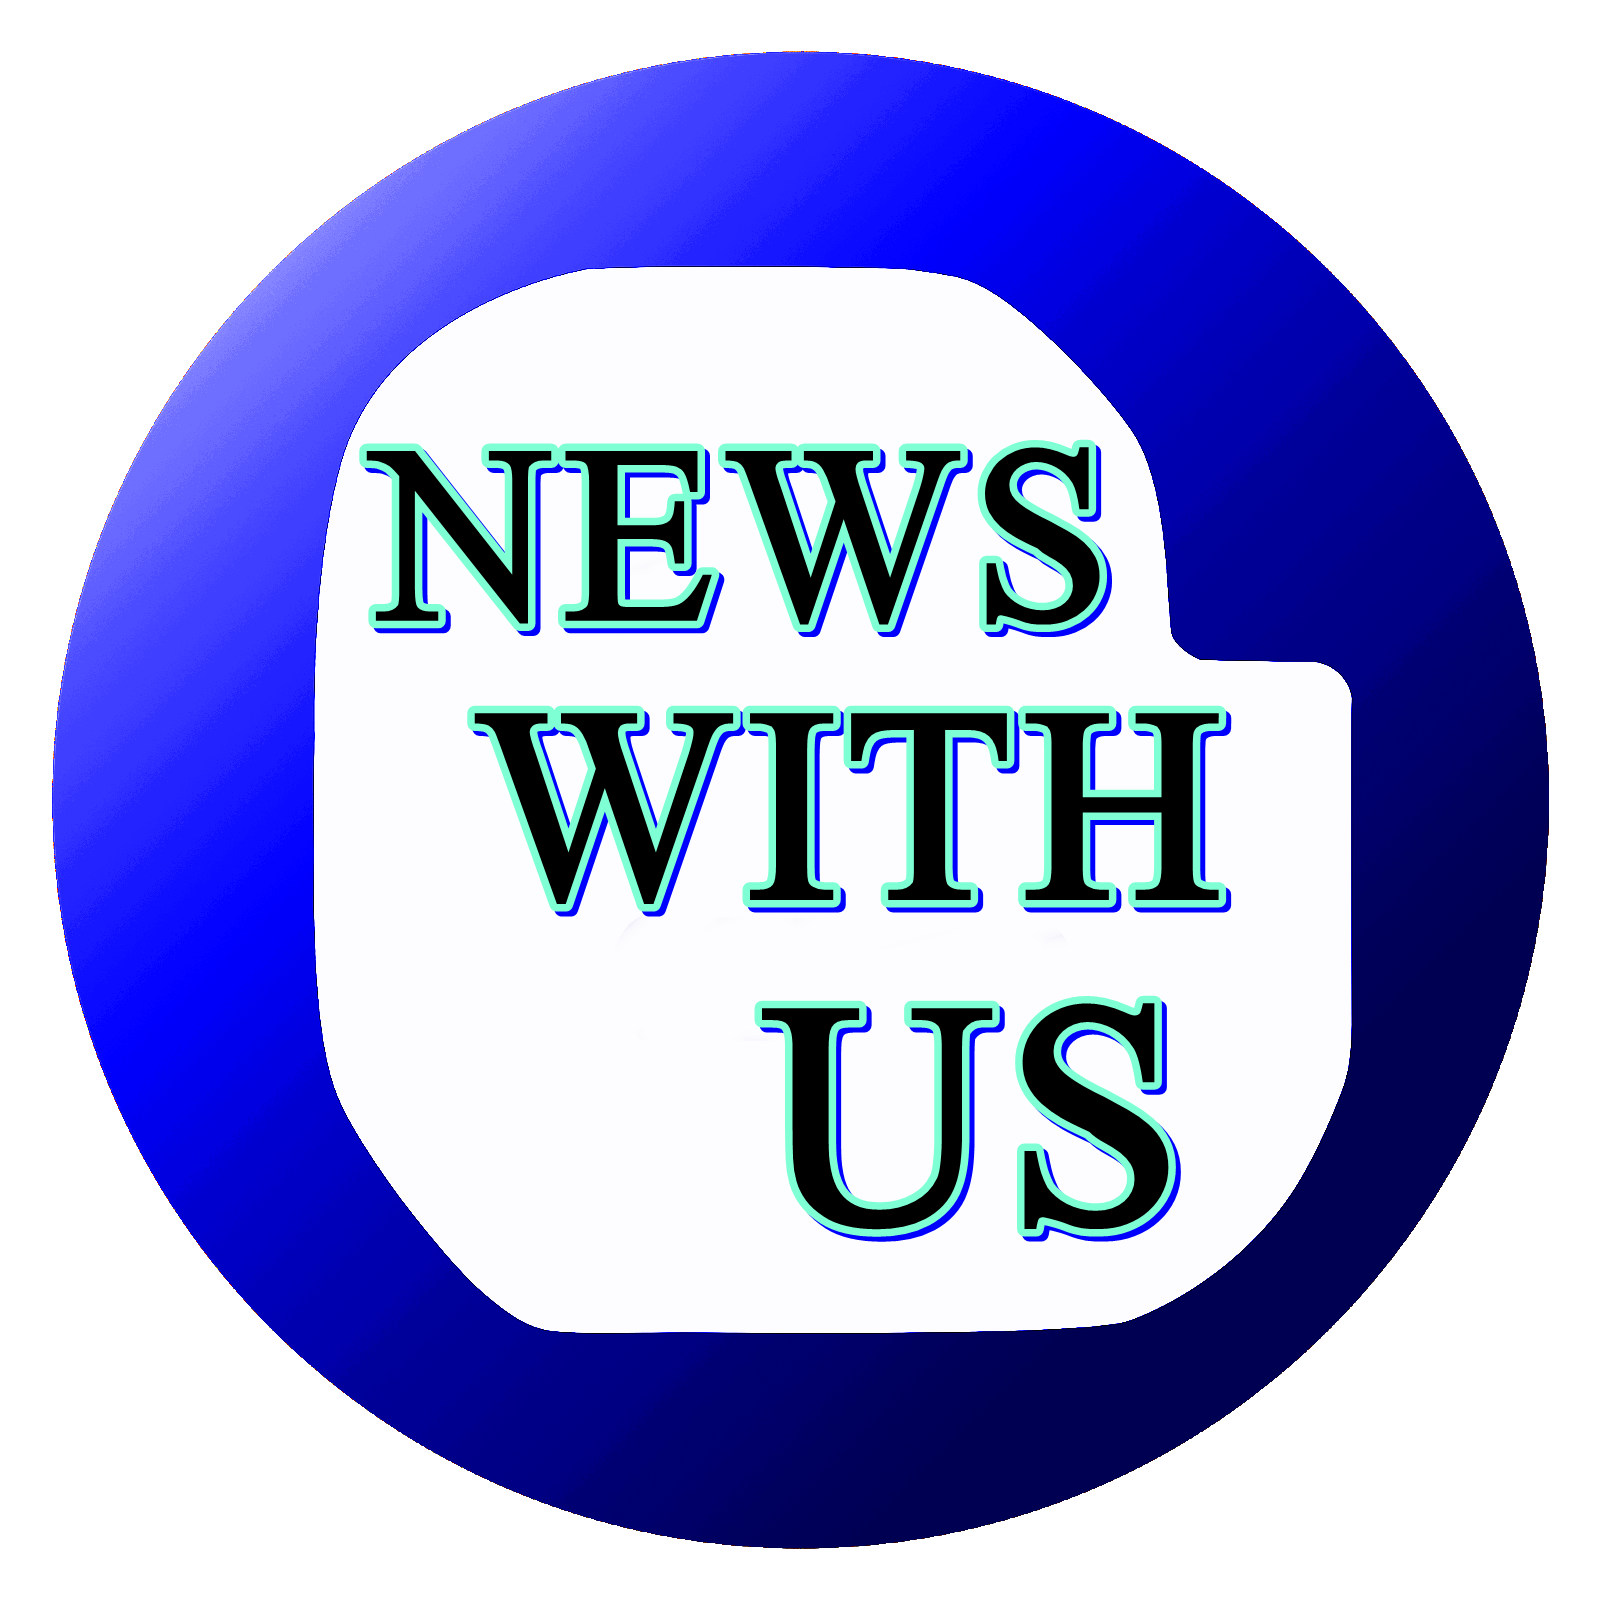 News With Us